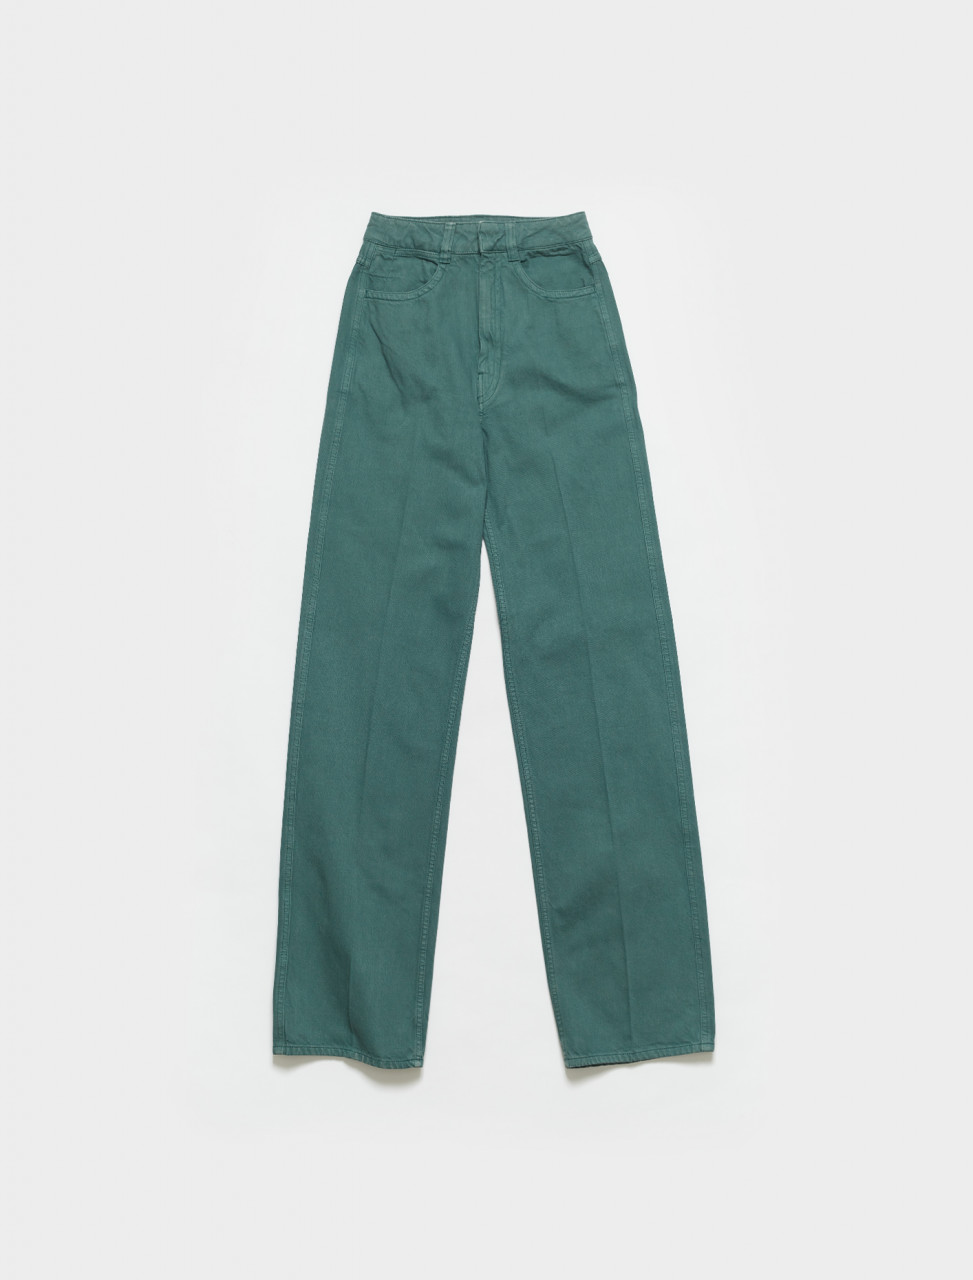 W-211-PA258-LD034-647 LEMAIRE DENIM PANTS IN SILVER PINE GREEN